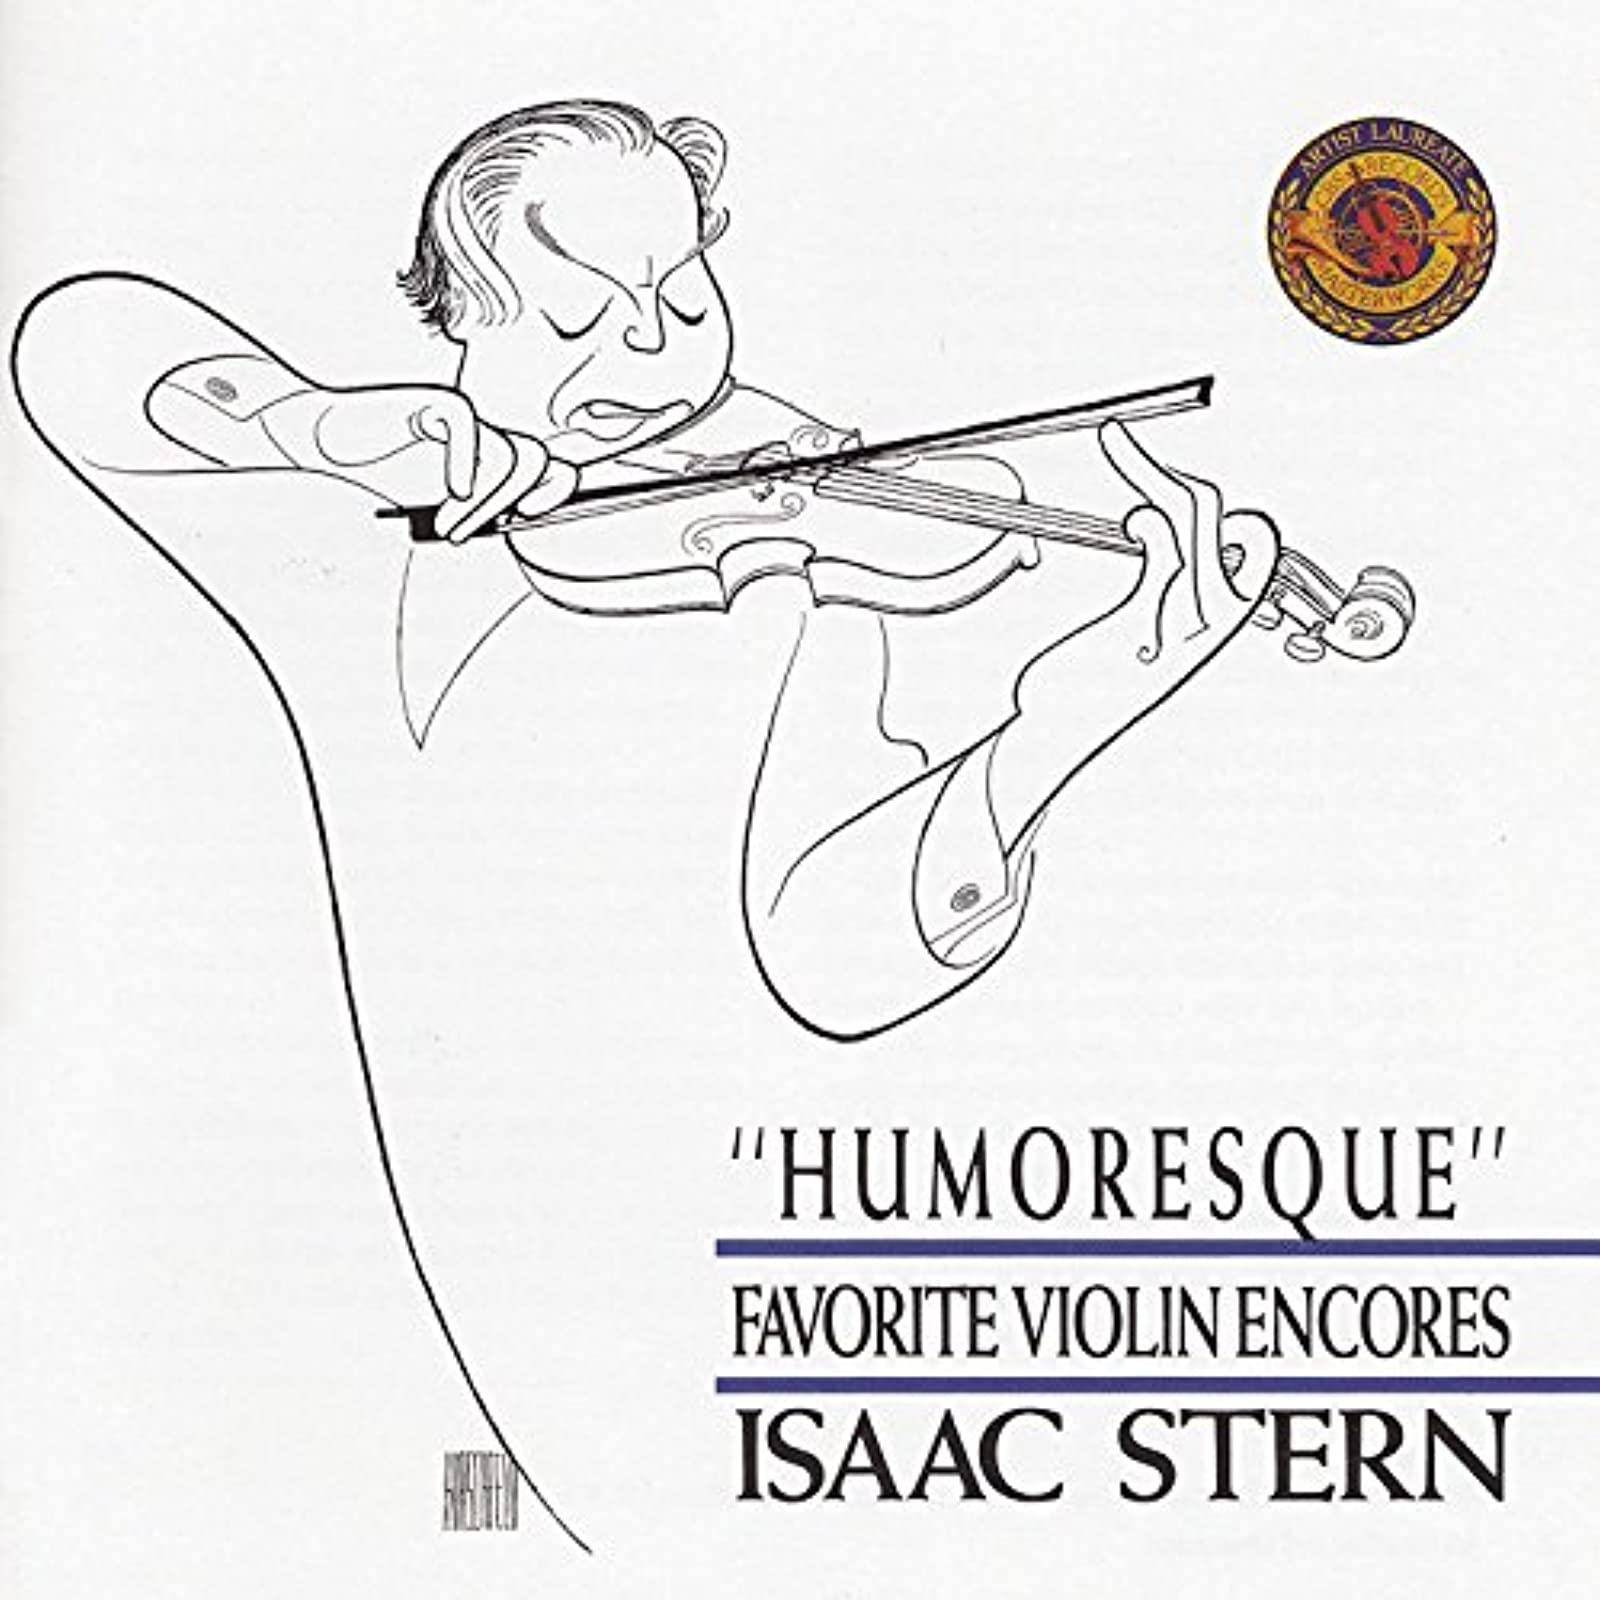 Humoresque Favorite Violin Encores By Alexander Borodin